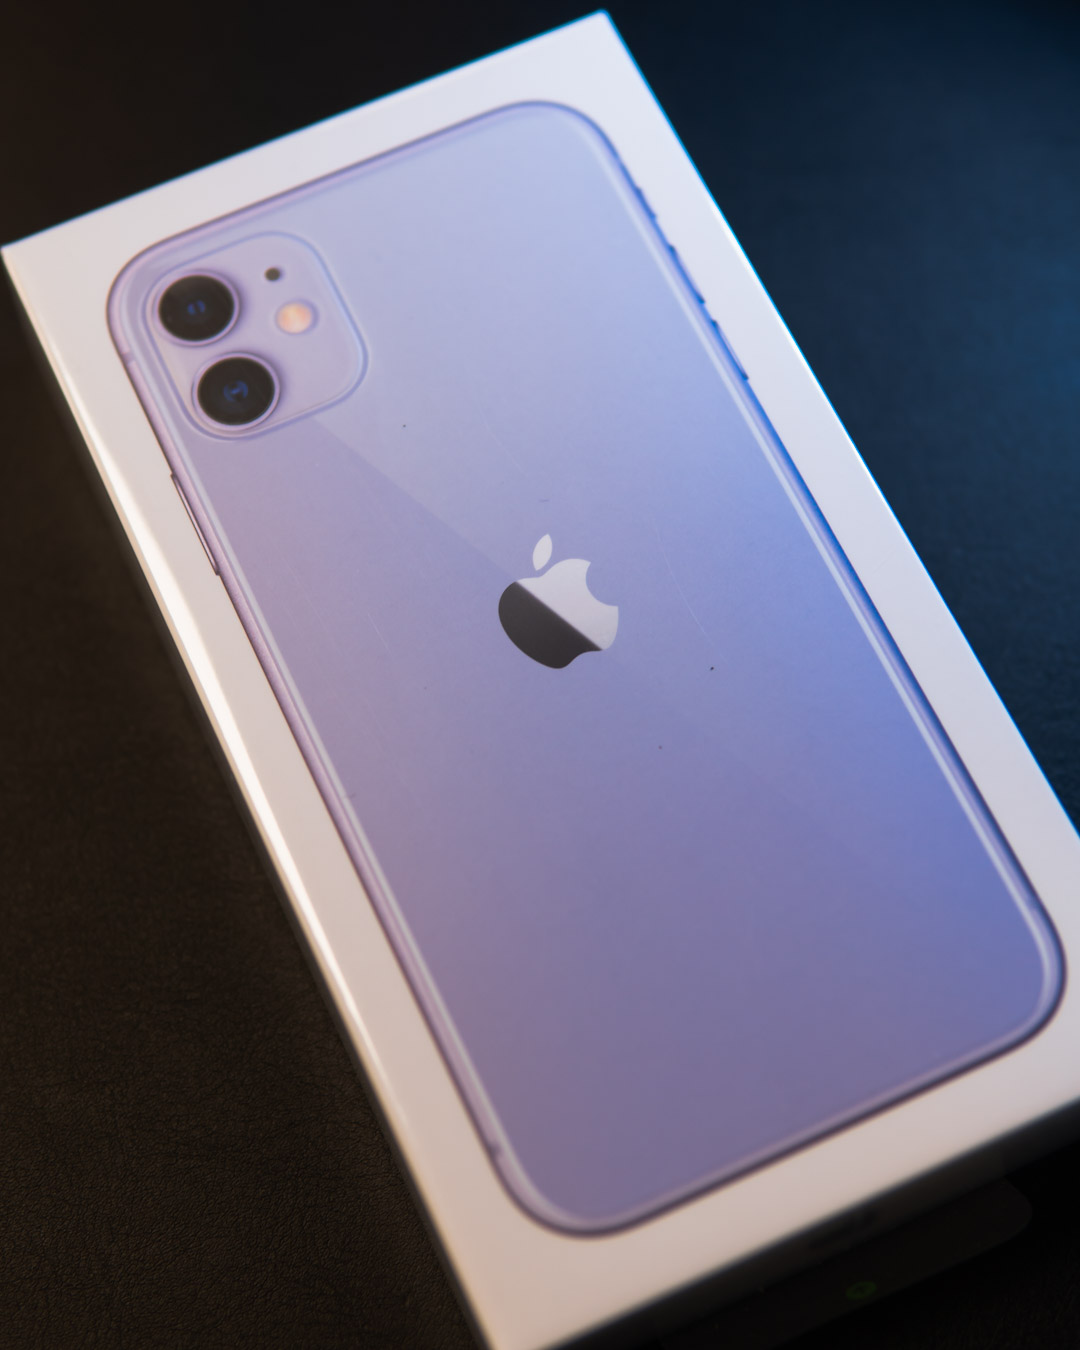 Black Friday Discounted iPhone 11 For Business Users - Purple iPhone 11 in box